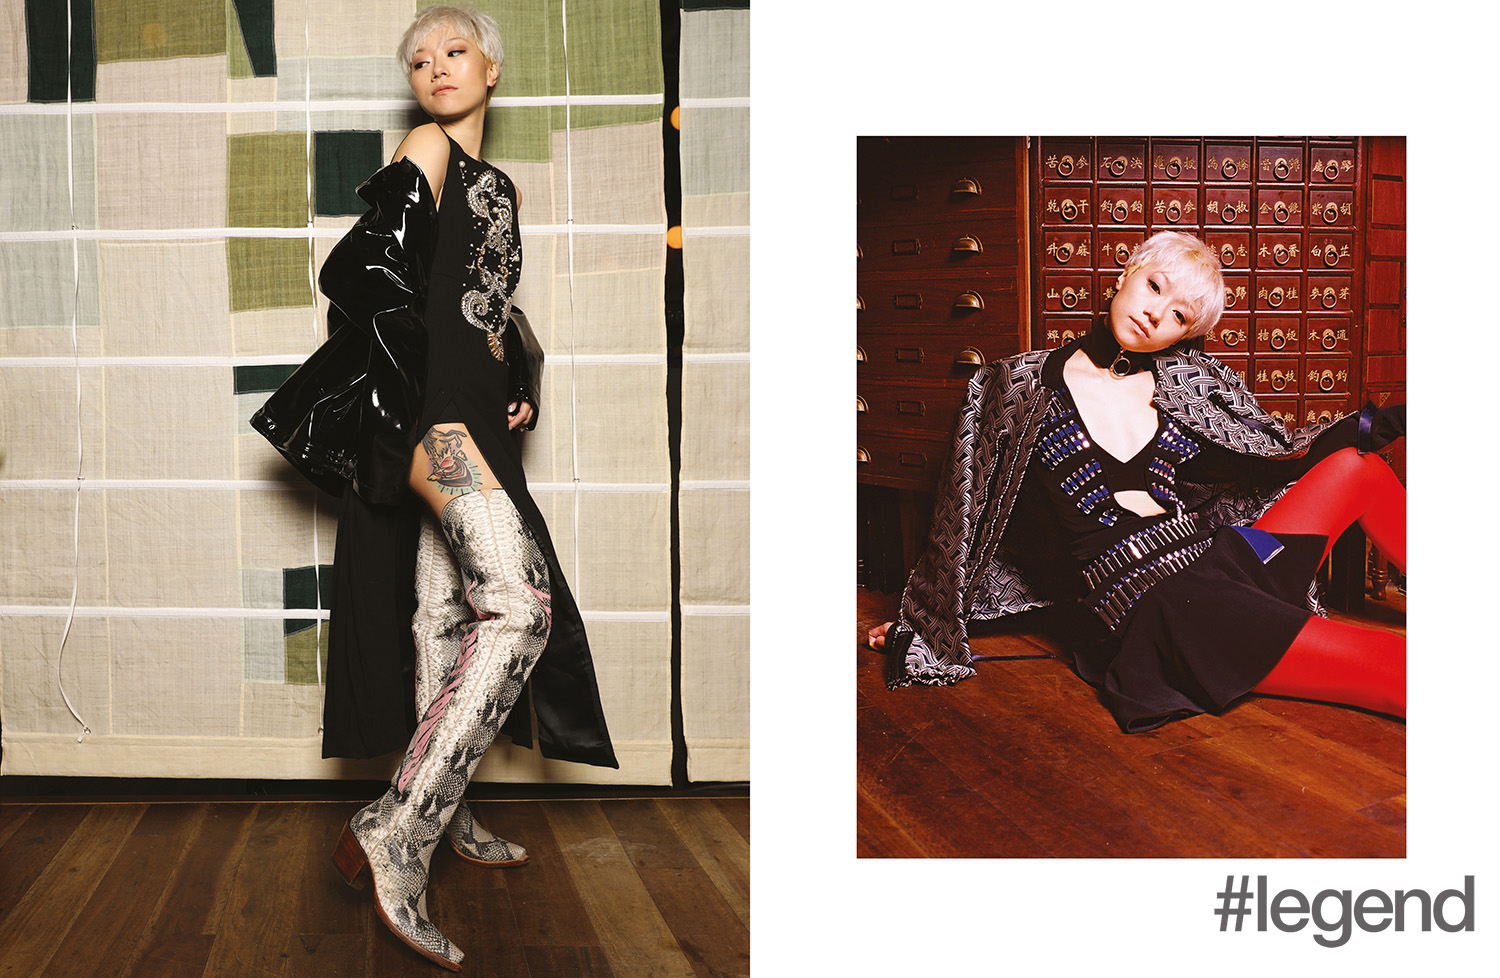 Left: Dress by Fausto Puglisi at Joyce, jacket from Monki and boots by Rocketbuster x House of Holland; Right: Jacket from Victoria Victoria Beckham at Joyce,  dress by David Koma at Joyce and choker and stockings by Monki